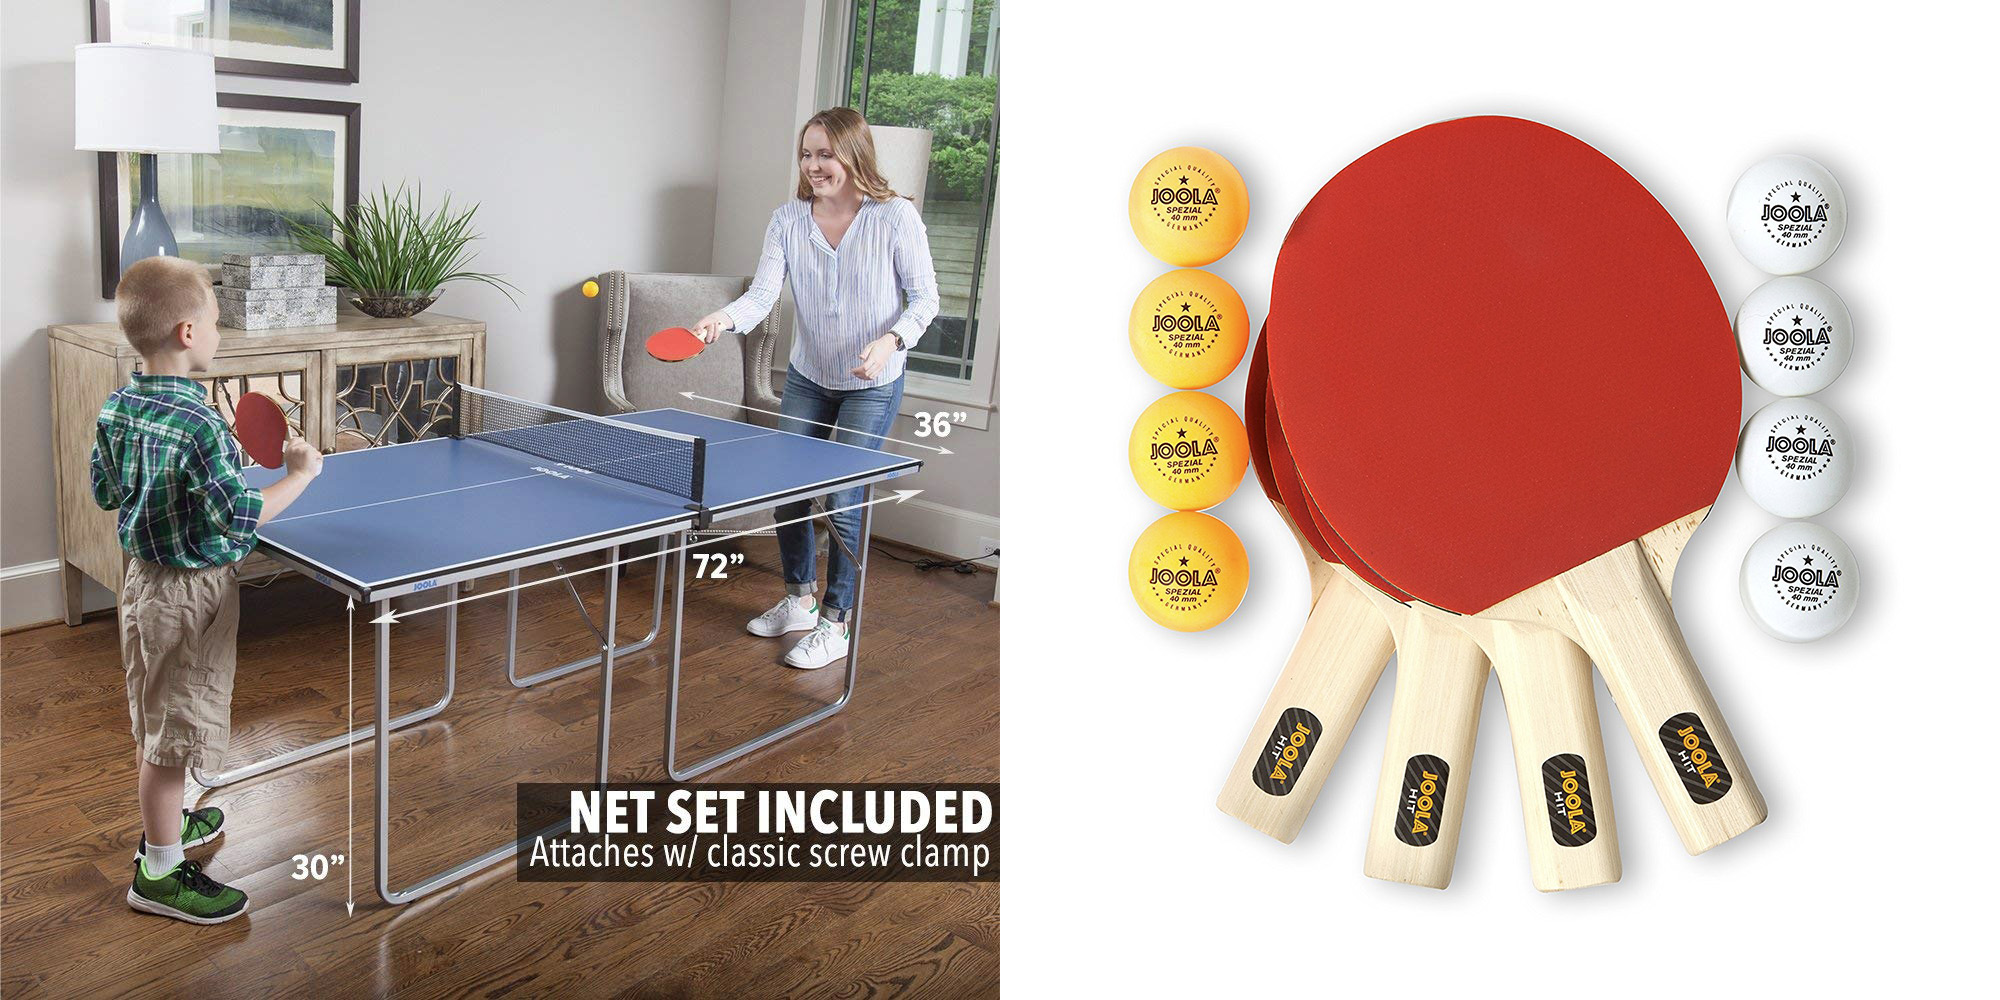 Ping-pong tables and accessories from $10 highlight today's Amazon Gold Box